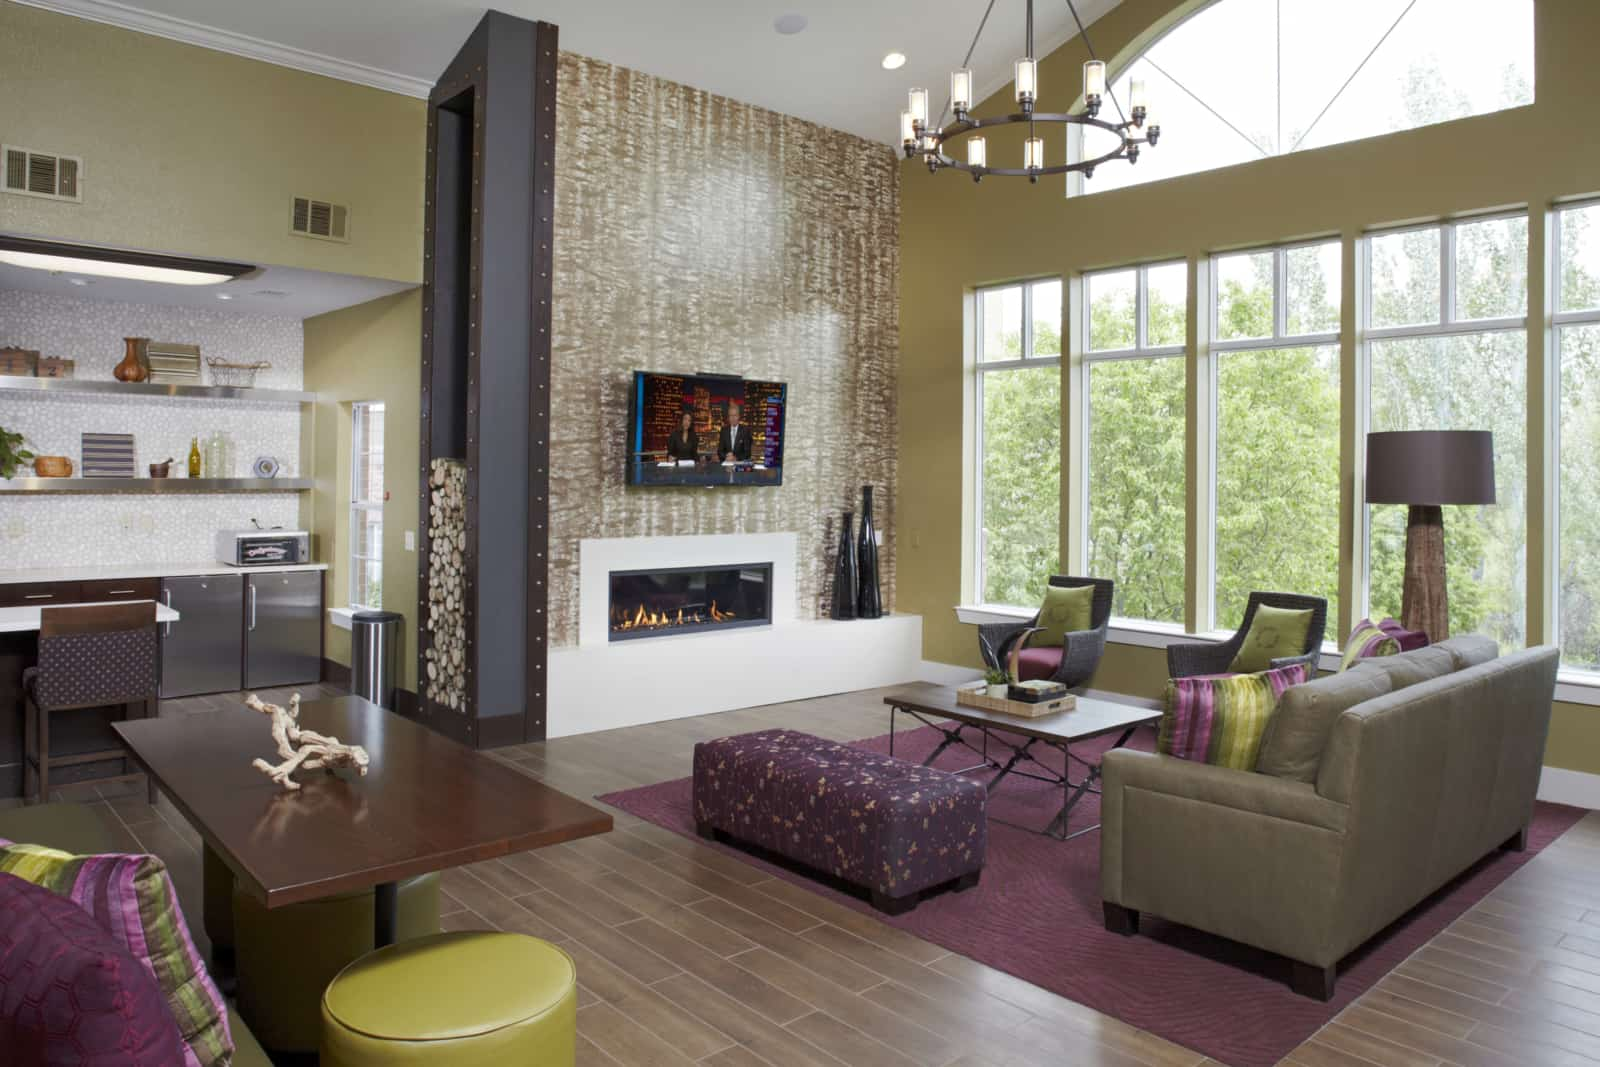 Interior of common area with couches, chairs, coffee table and a kitchen area off to the left.